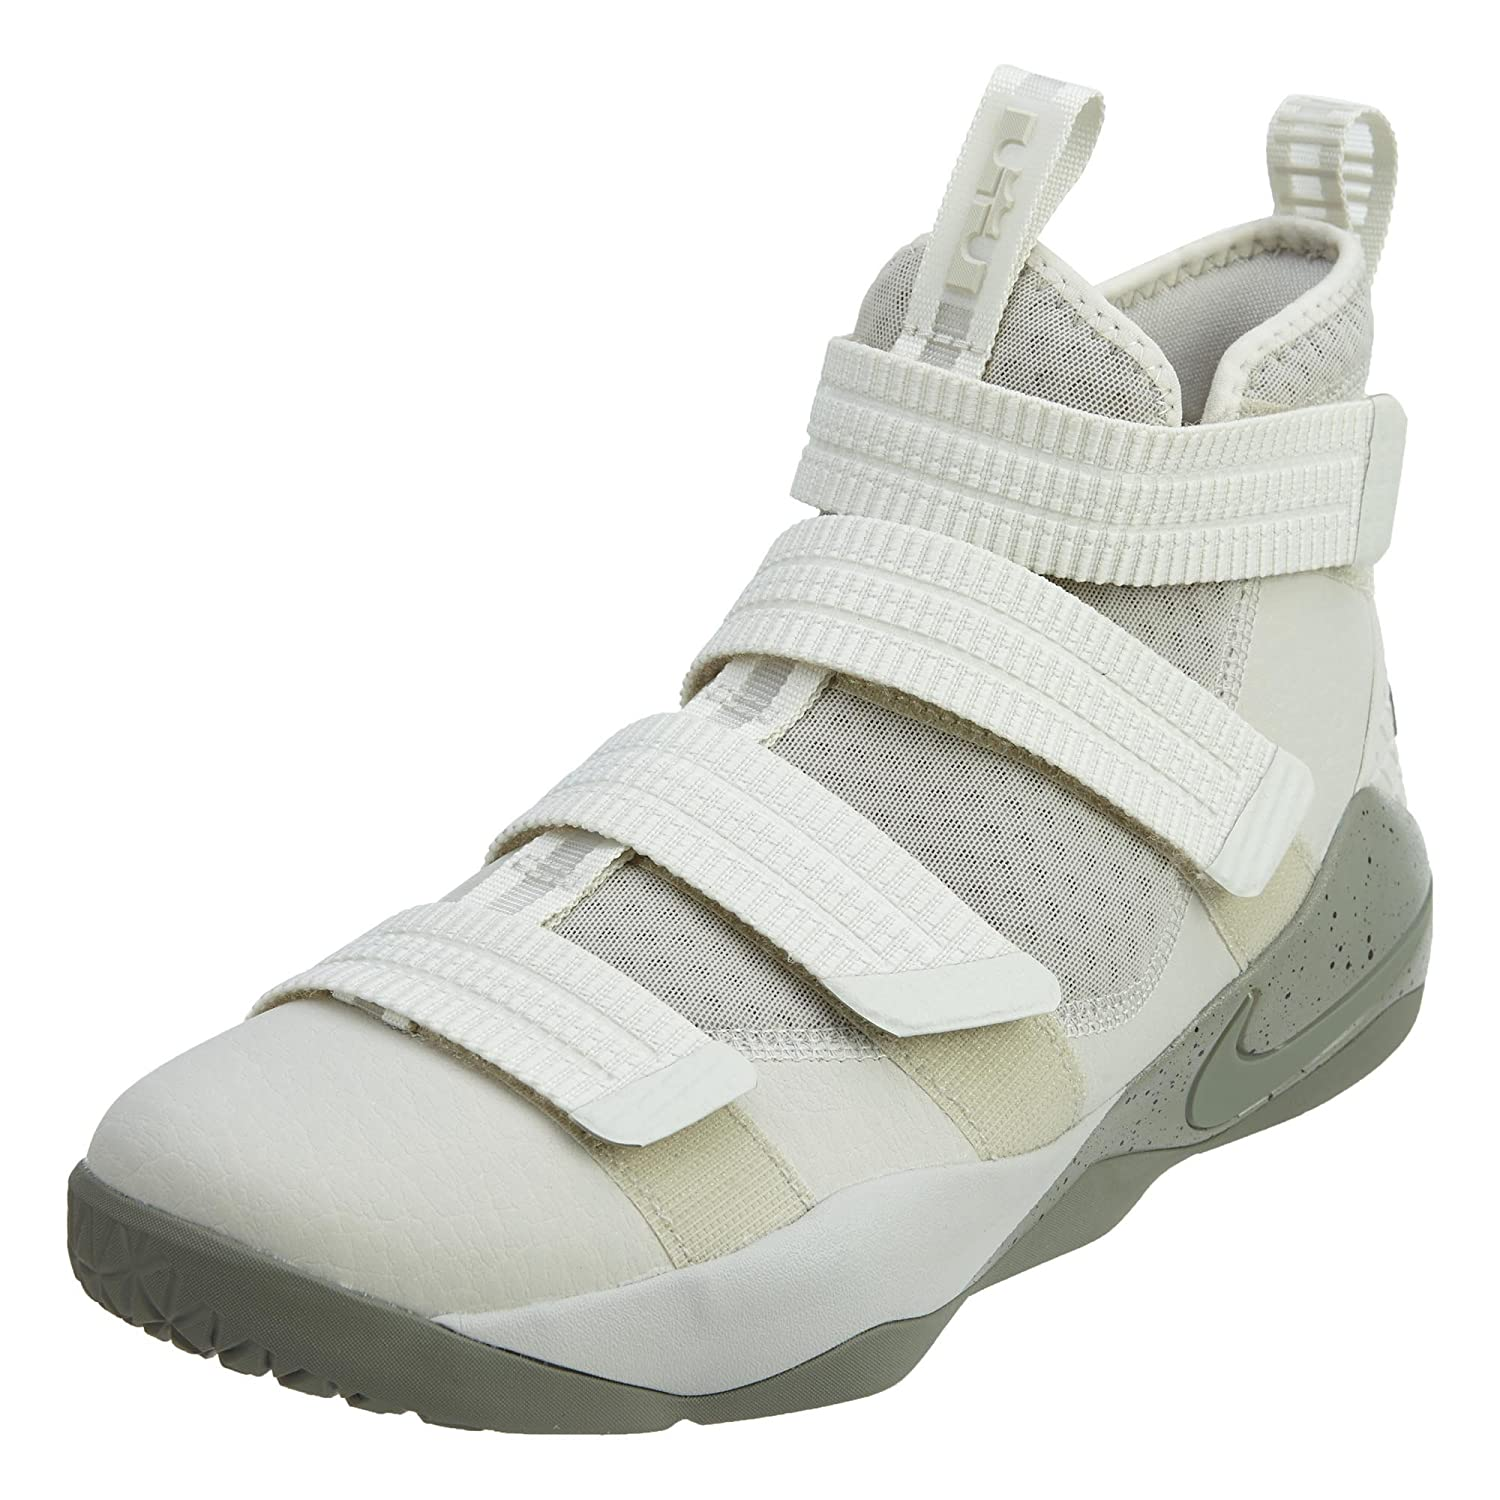 fcd058a18a7ae NIKE Lebron Soldier SFG Mens Style: 897646-005 Size: 10 M US